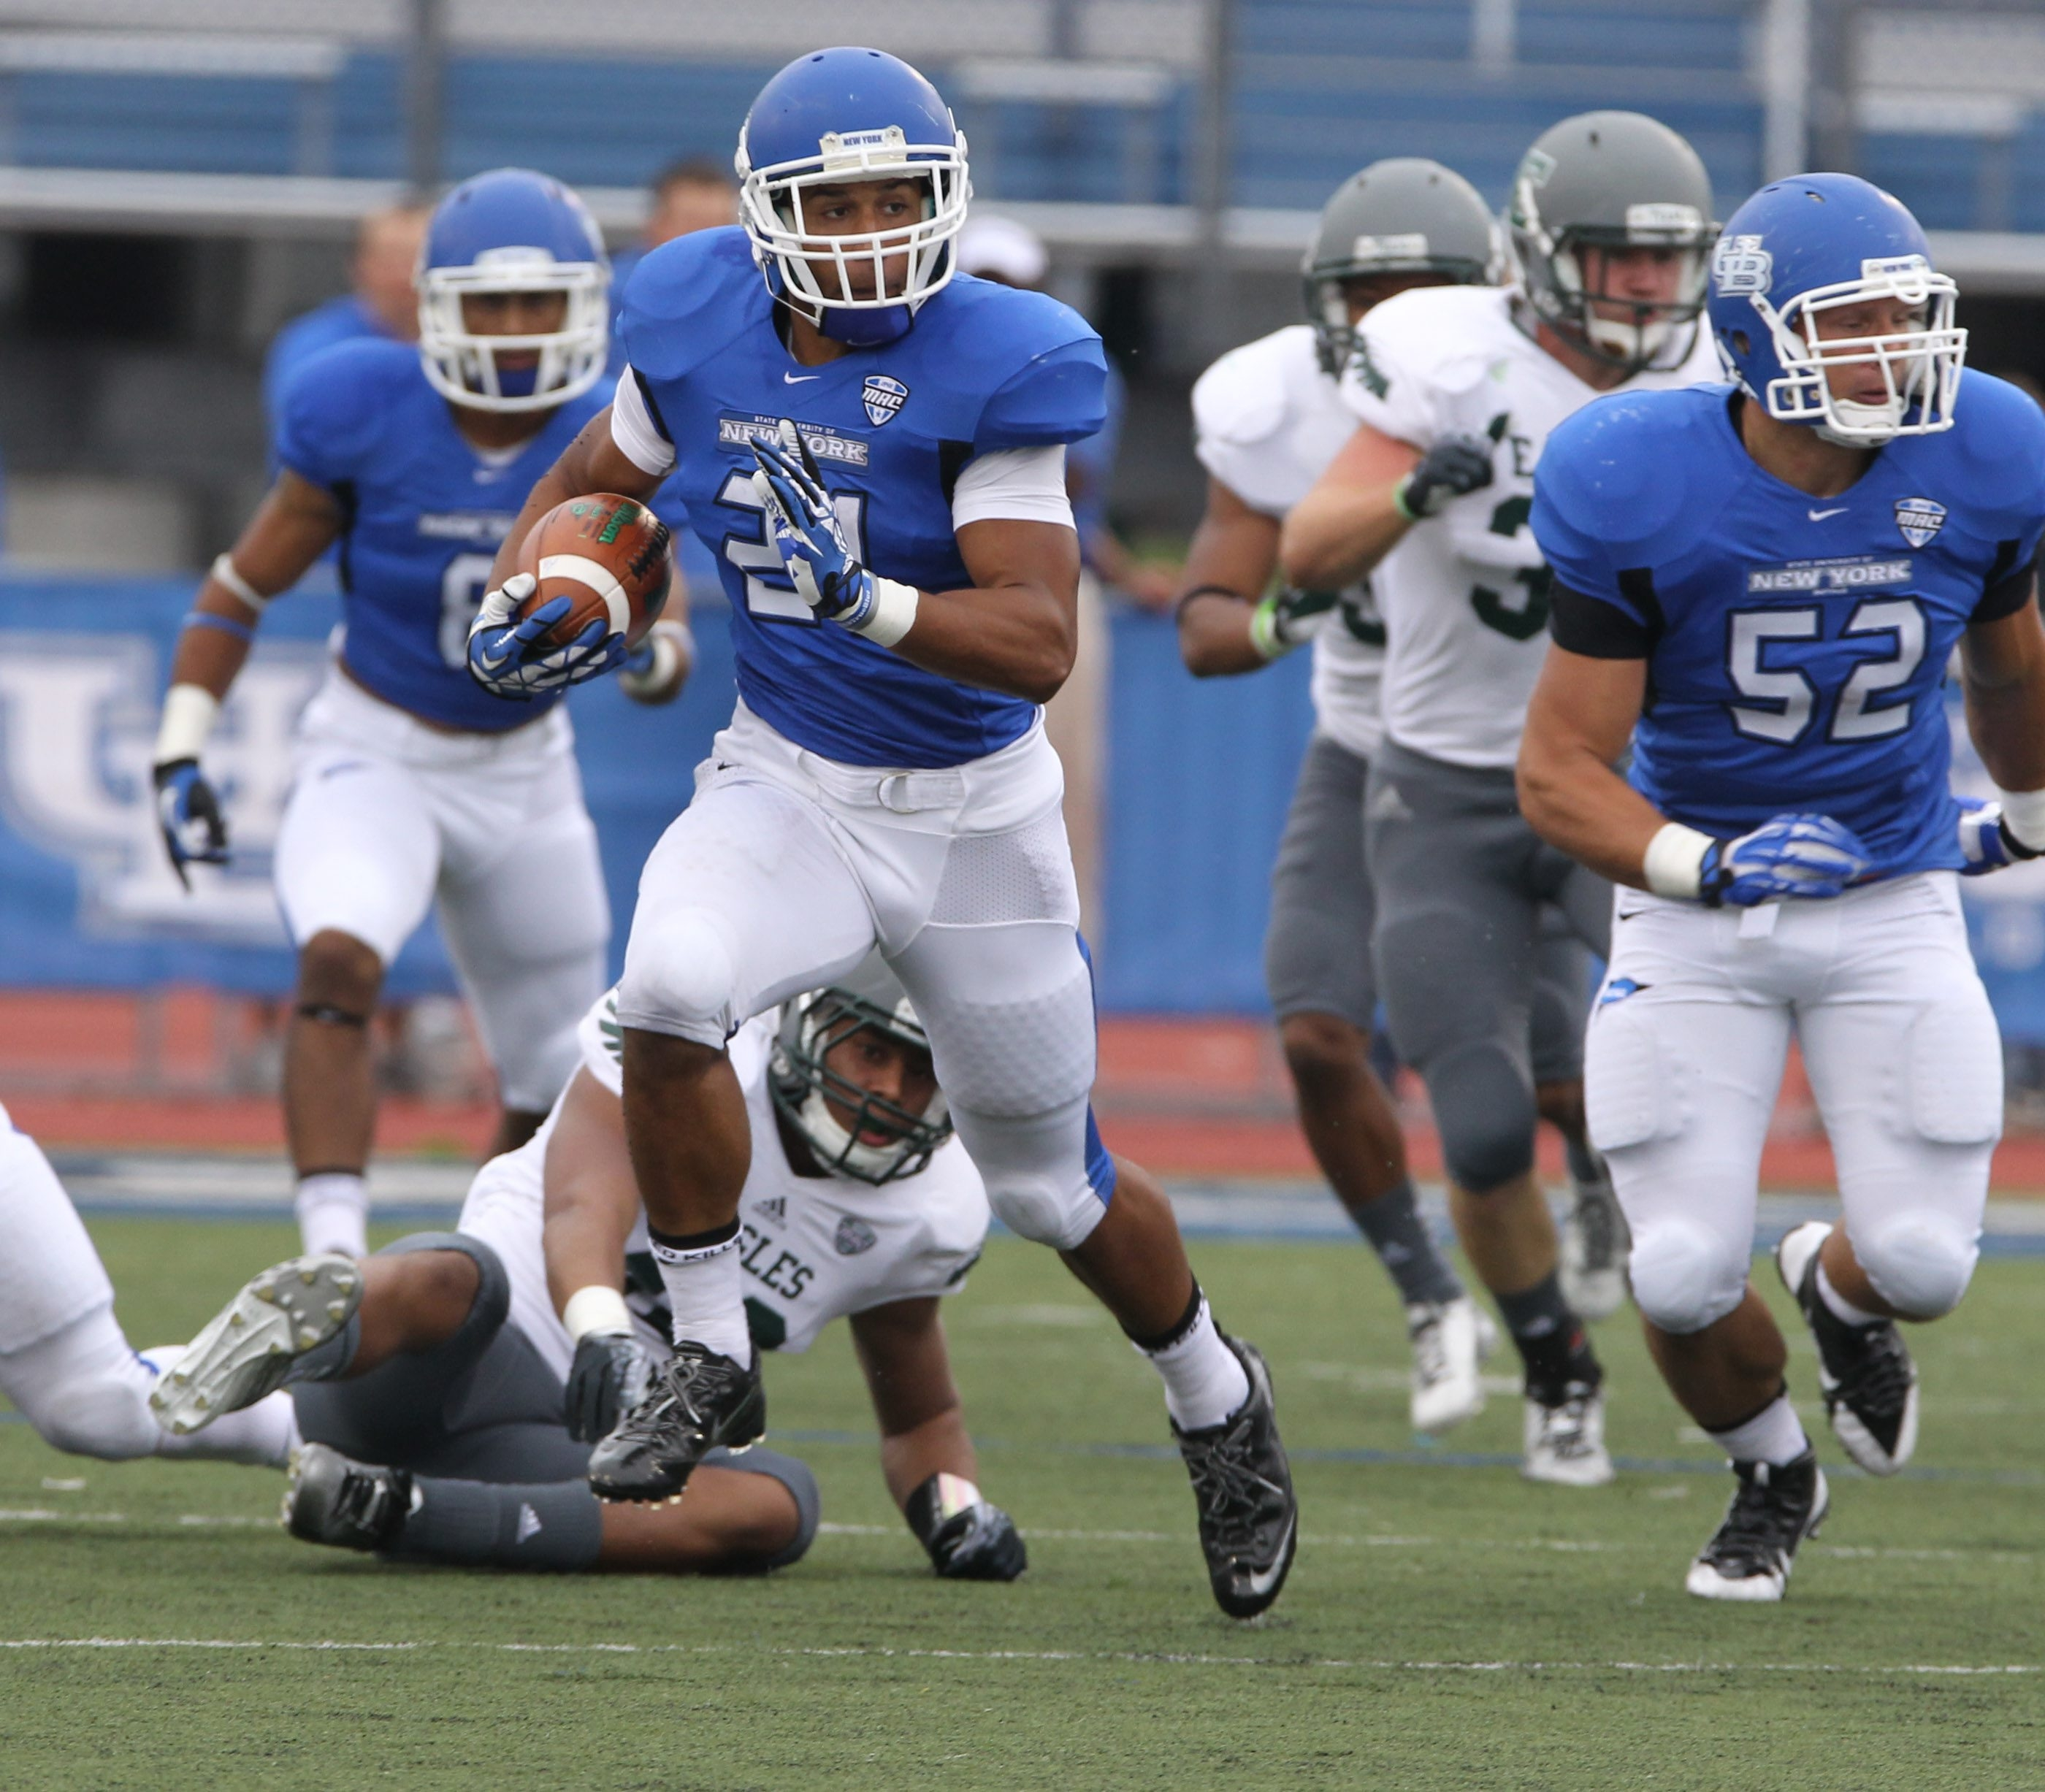 UB running back Devin Campbell is off on a 96-yard touchdown return of a kickoff in the Bulls' win over Eastern Michigan.